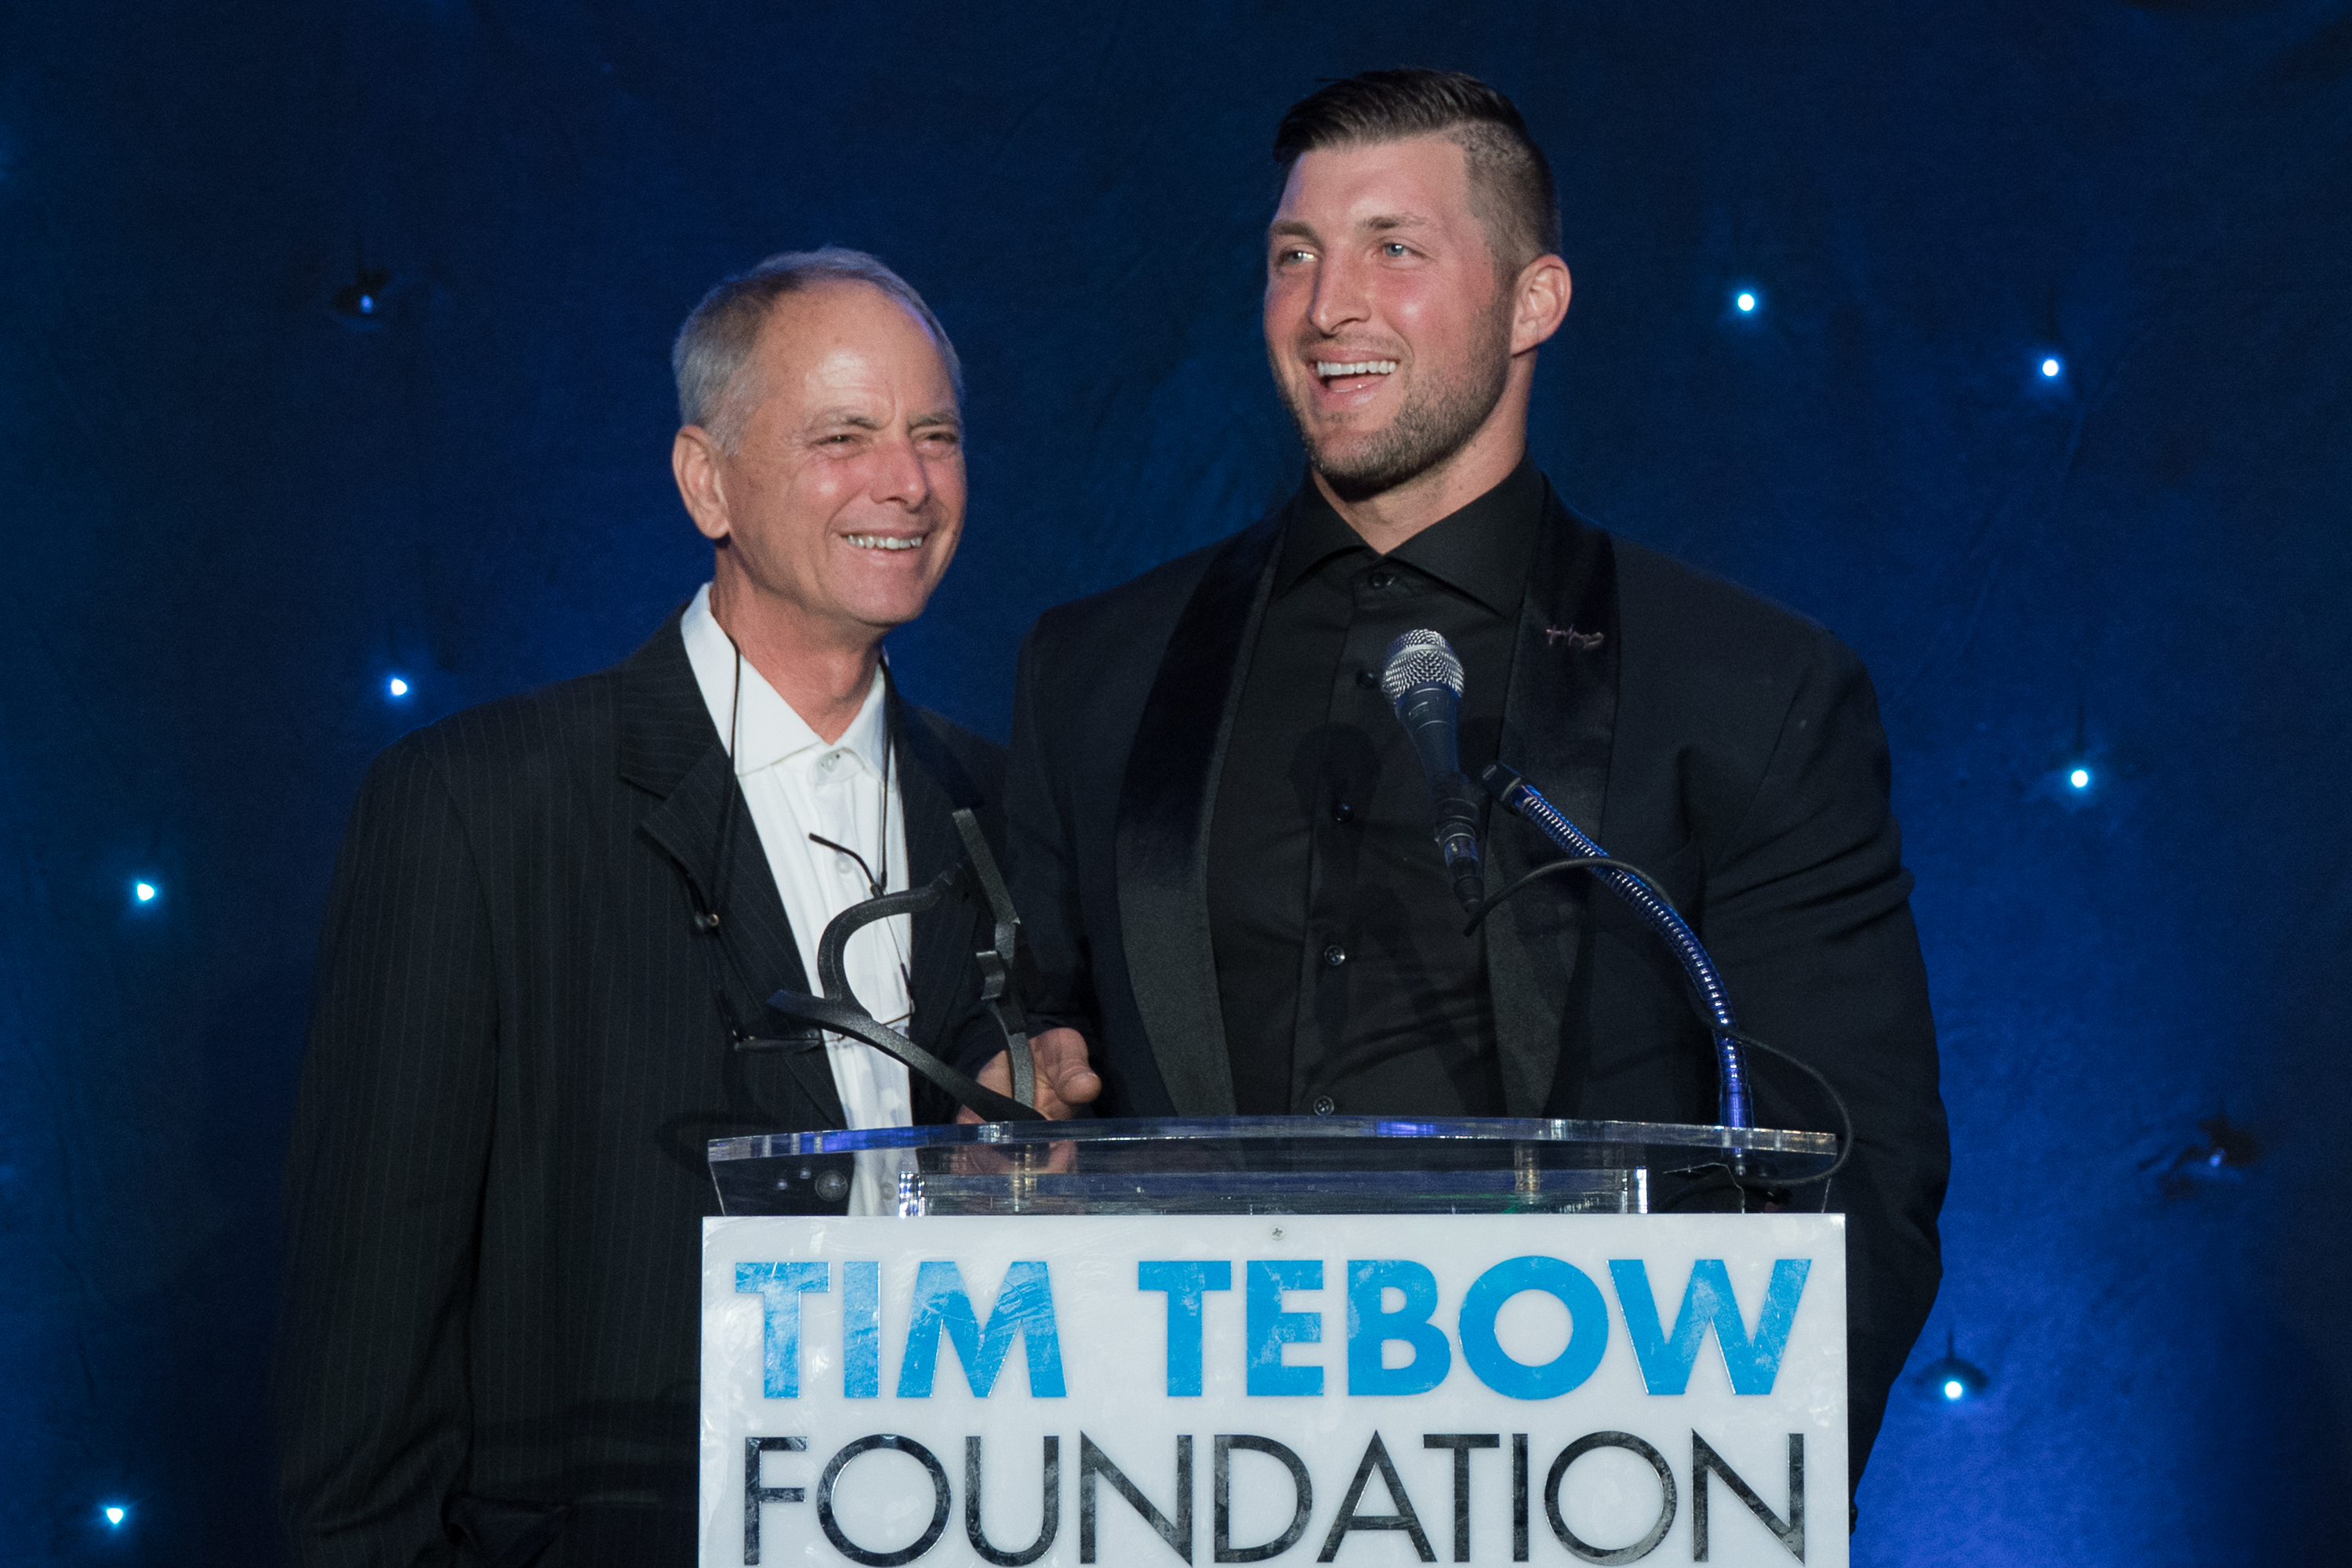 Bob_Tebow_is_honored_with_the_Life_of_Significance_Award.jpg